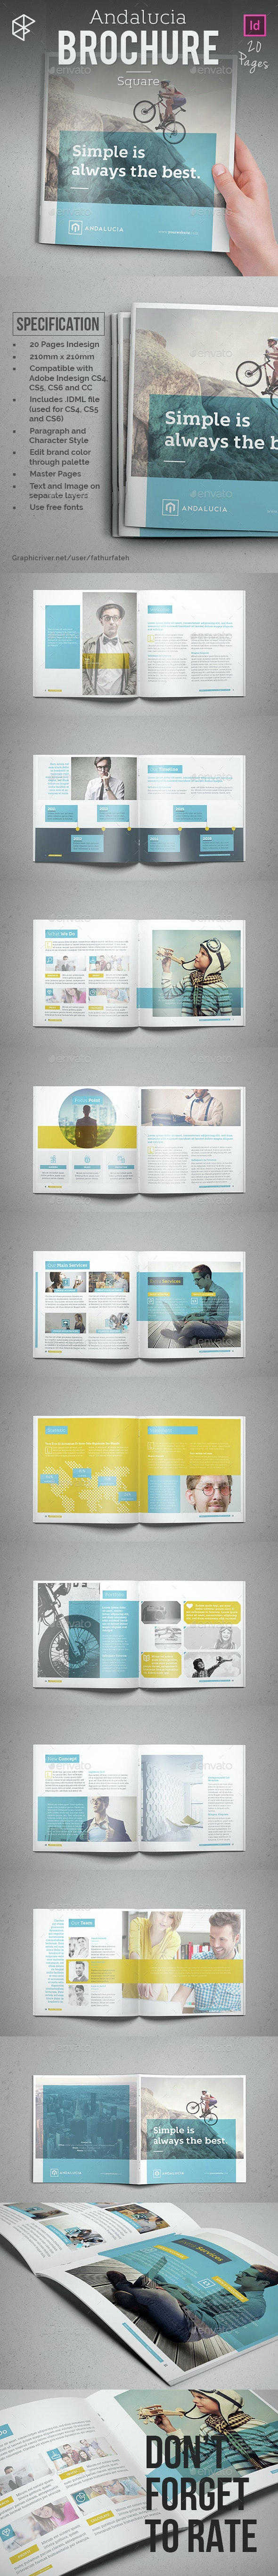 Andalucia Square Brochure - Corporate Brochures